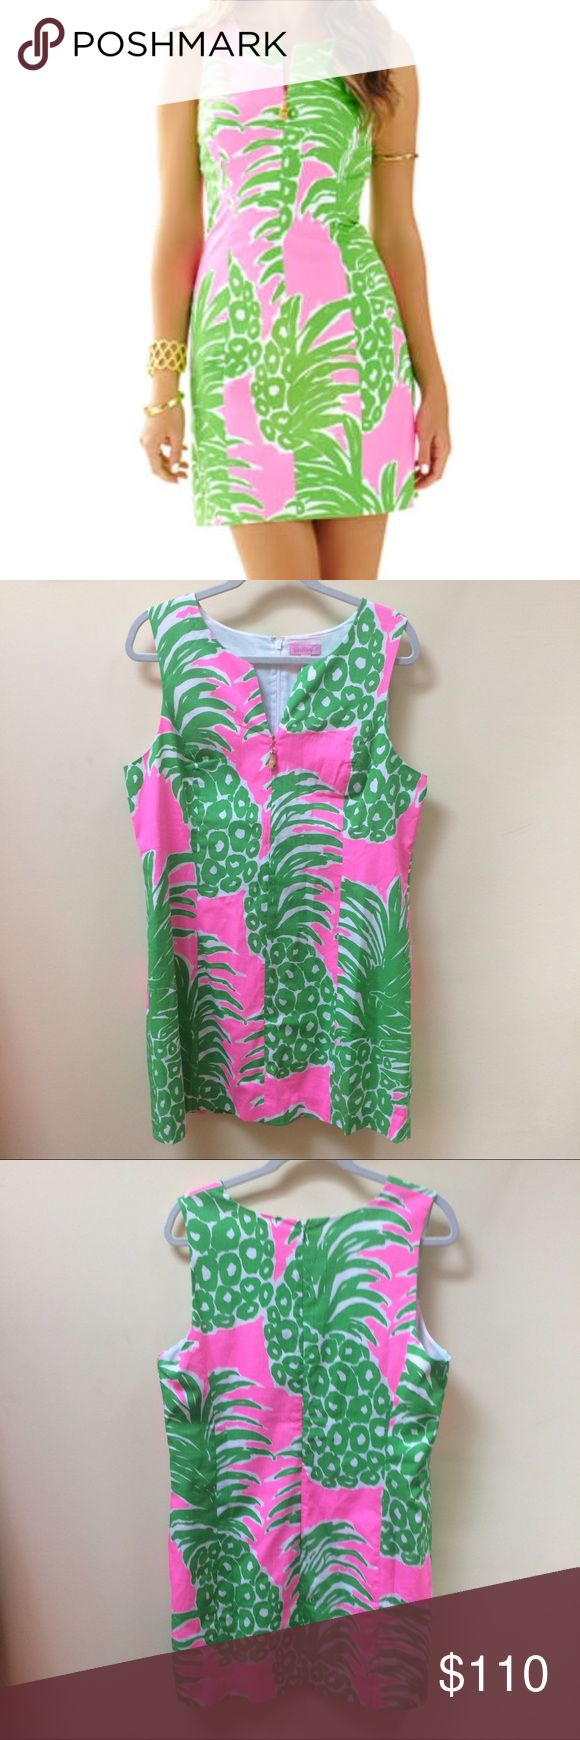 NWOT Lilly Pulitzer Pink Pout Flamenco Dress 16 Popular green and hot pink pineapple print pink pout flamenco dress. 35 inches long and 20.5 inches across chest. Shift dress style, Zipper pull in front. New without tags! Cross posted. Lilly Pulitzer Dresses Mini